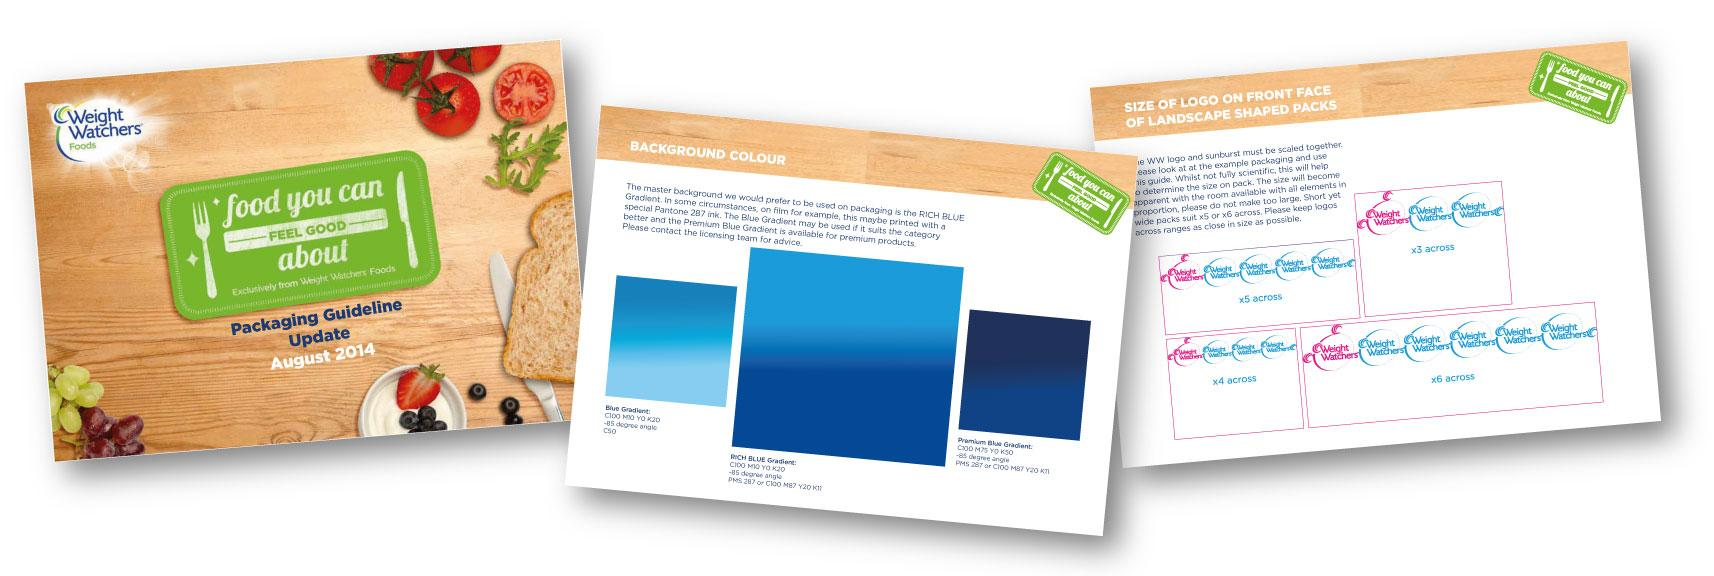 Weight Watchers – Packaging Guidelines